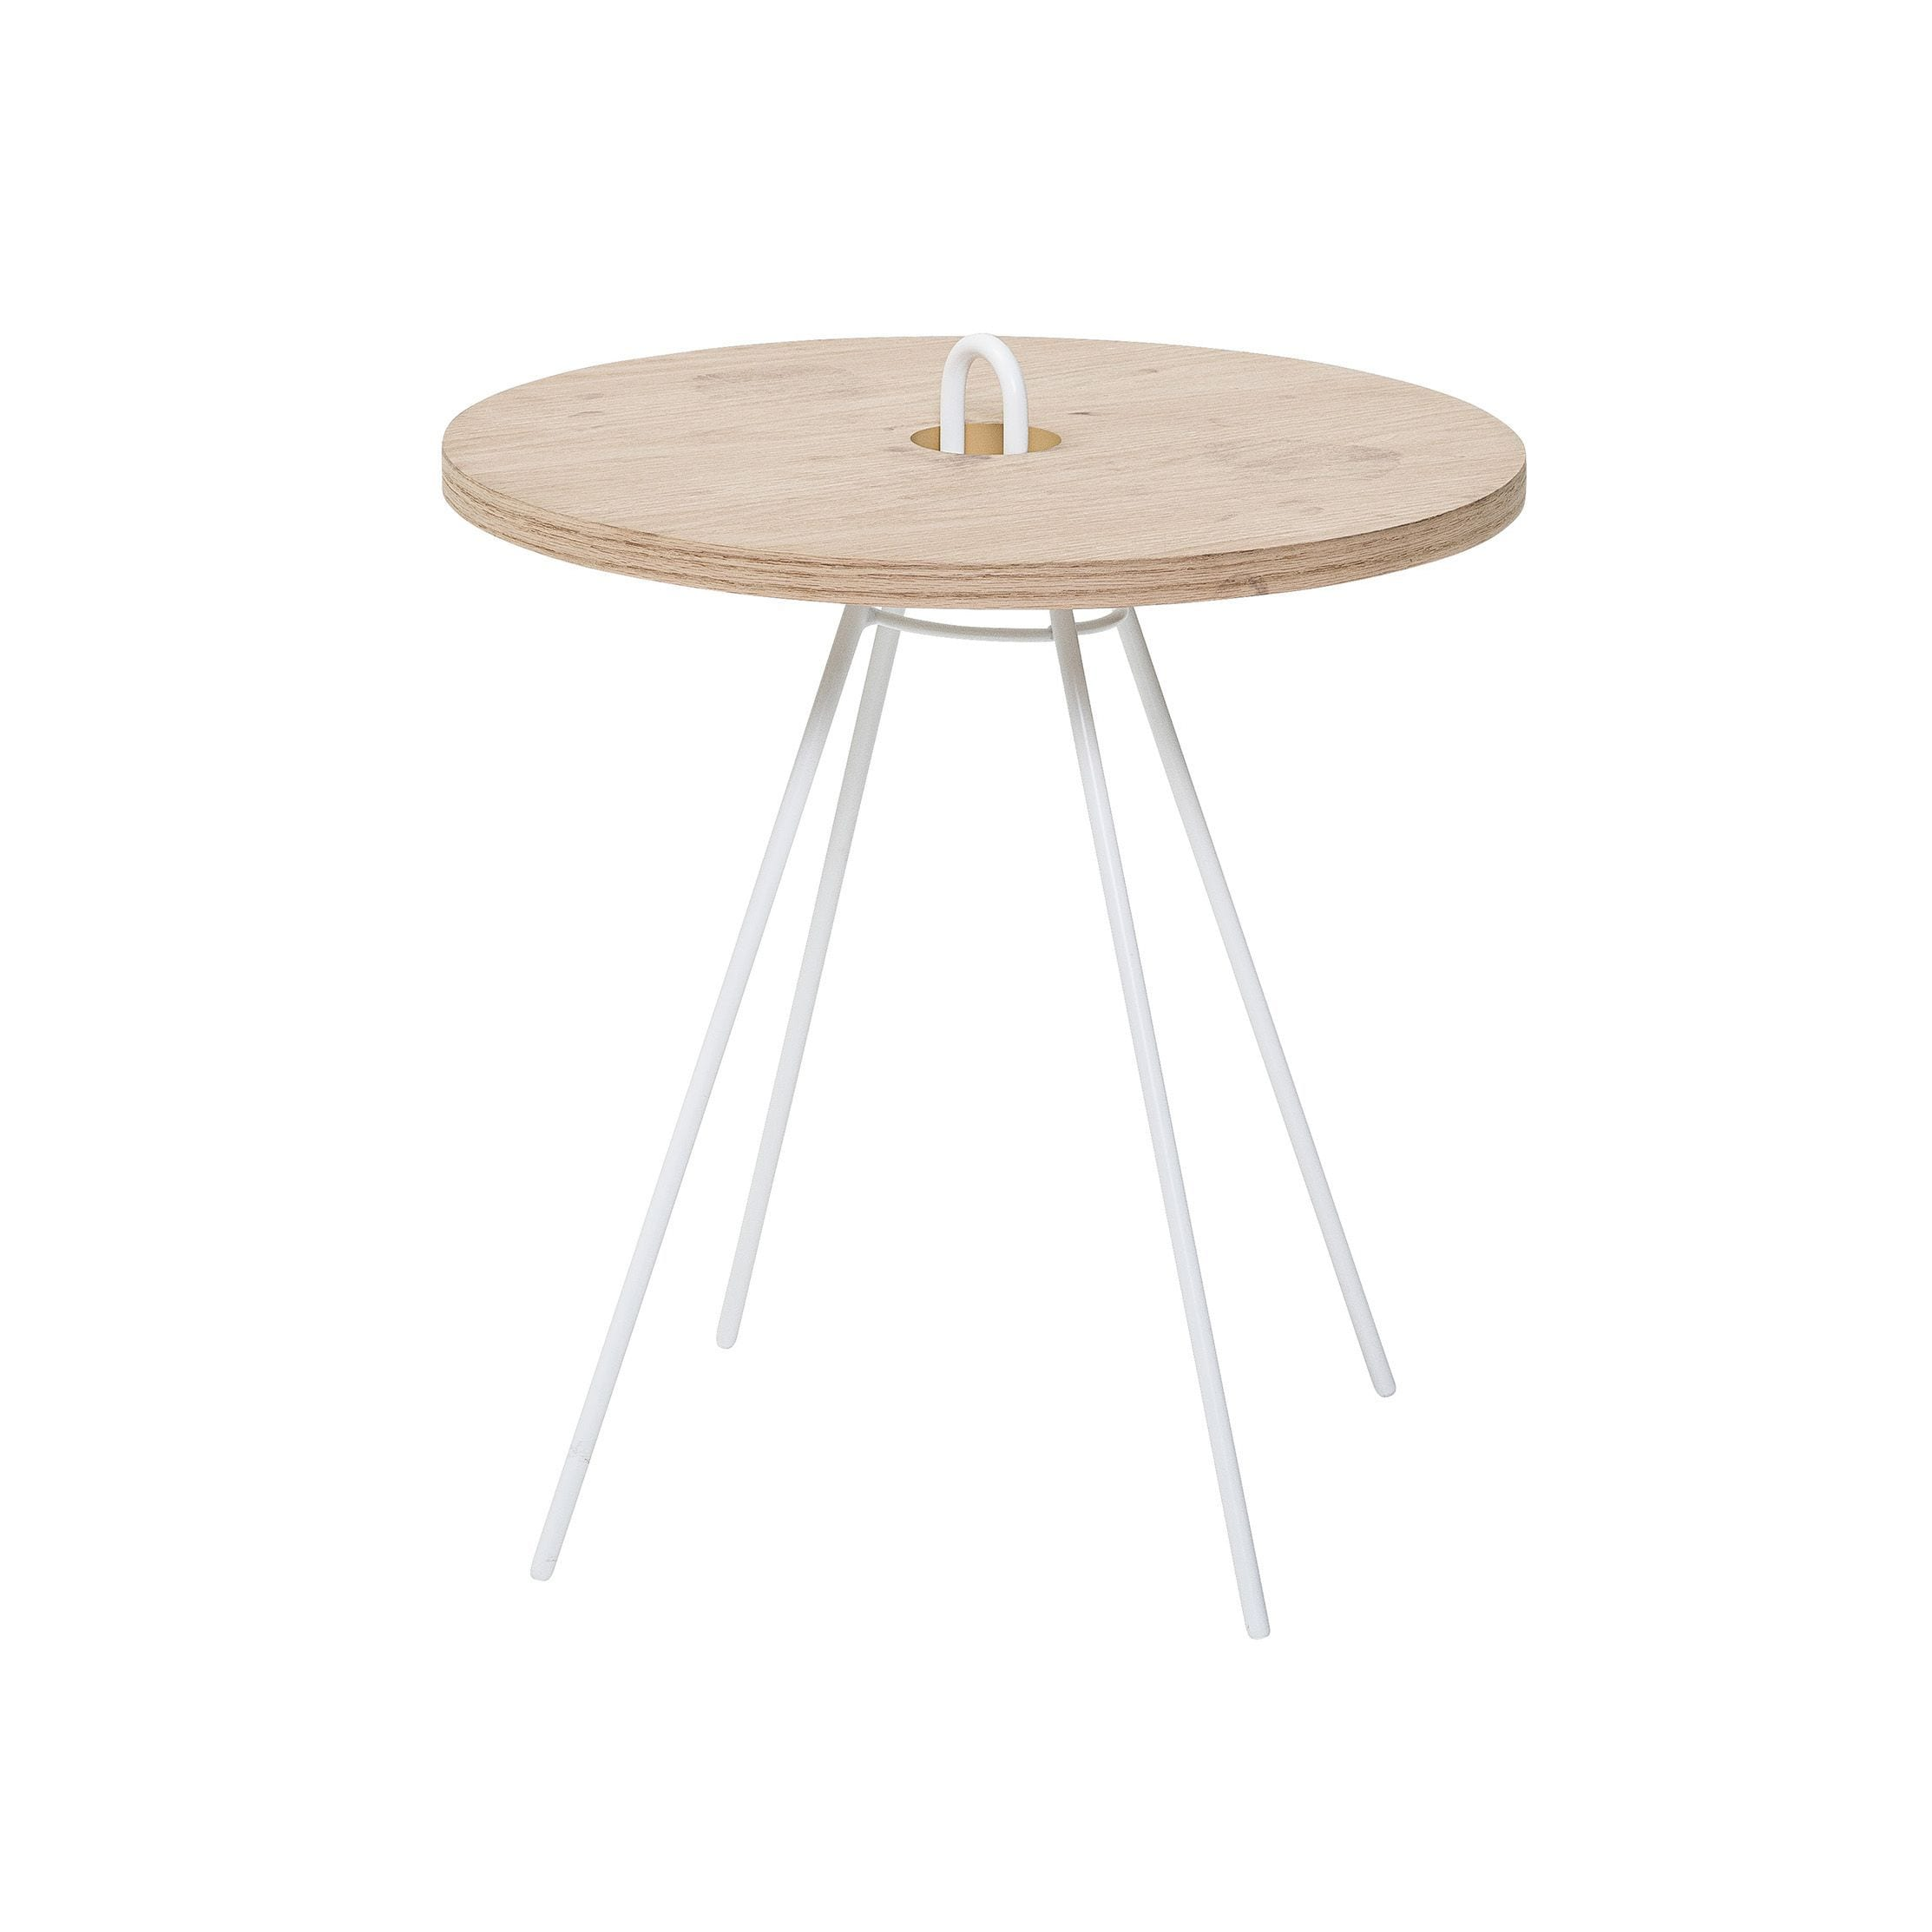 Table basse - Chloe